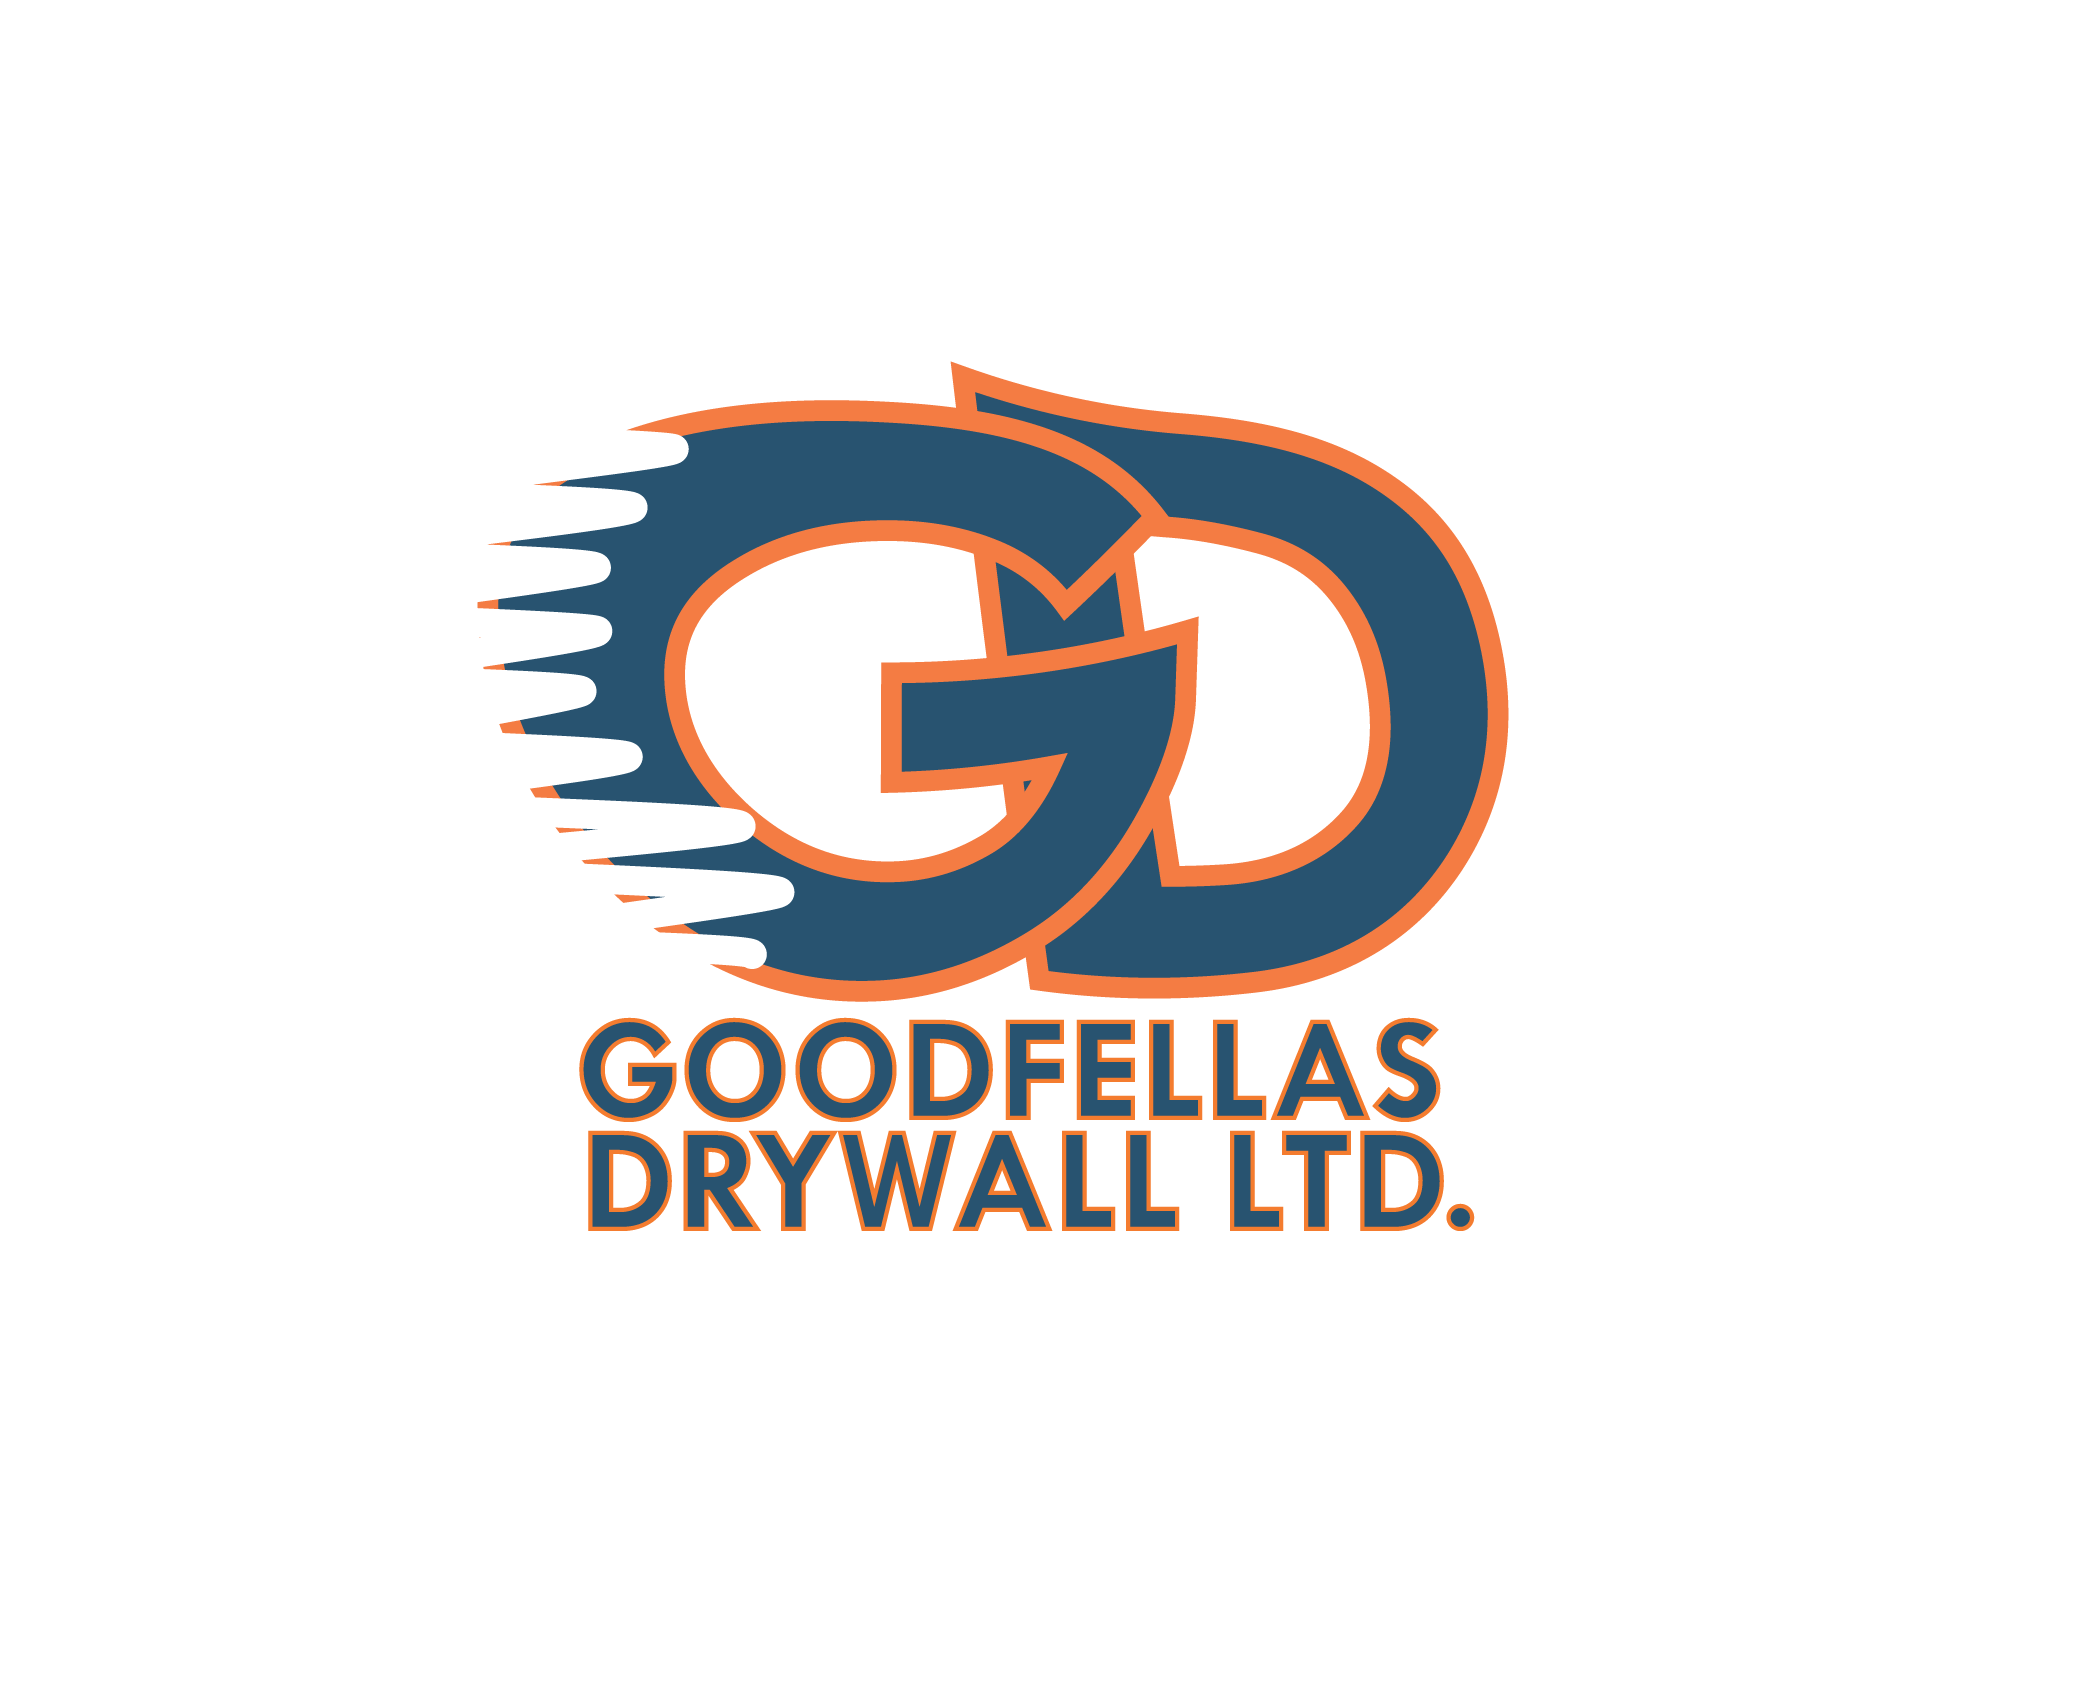 Logo Design by Tim Holley - Entry No. 170 in the Logo Design Contest Creative Logo Design for Goodfellas Drywall.